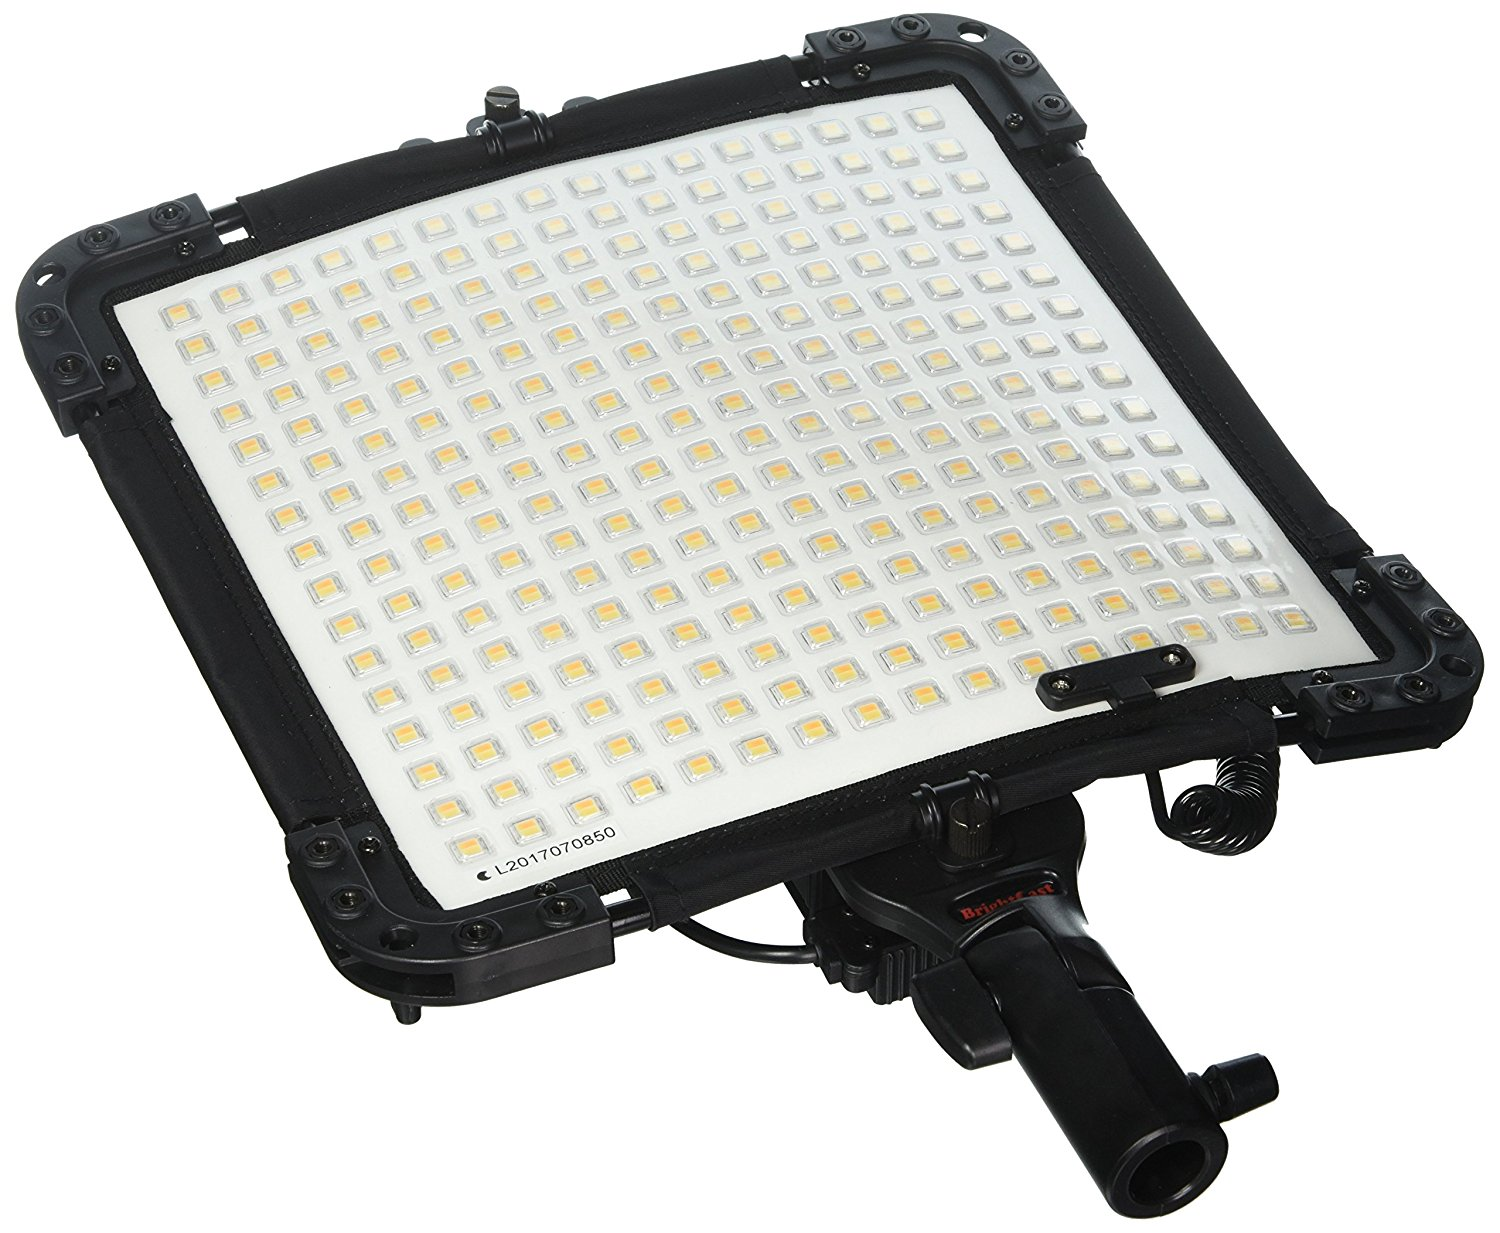 Kamerar BrightCast V15-345P Bi-Color Flexible LED Light Panel with AC Adapter, Water Resistant, Shock Proof, Rugged, Daylight and Tungsten (V-Mount)